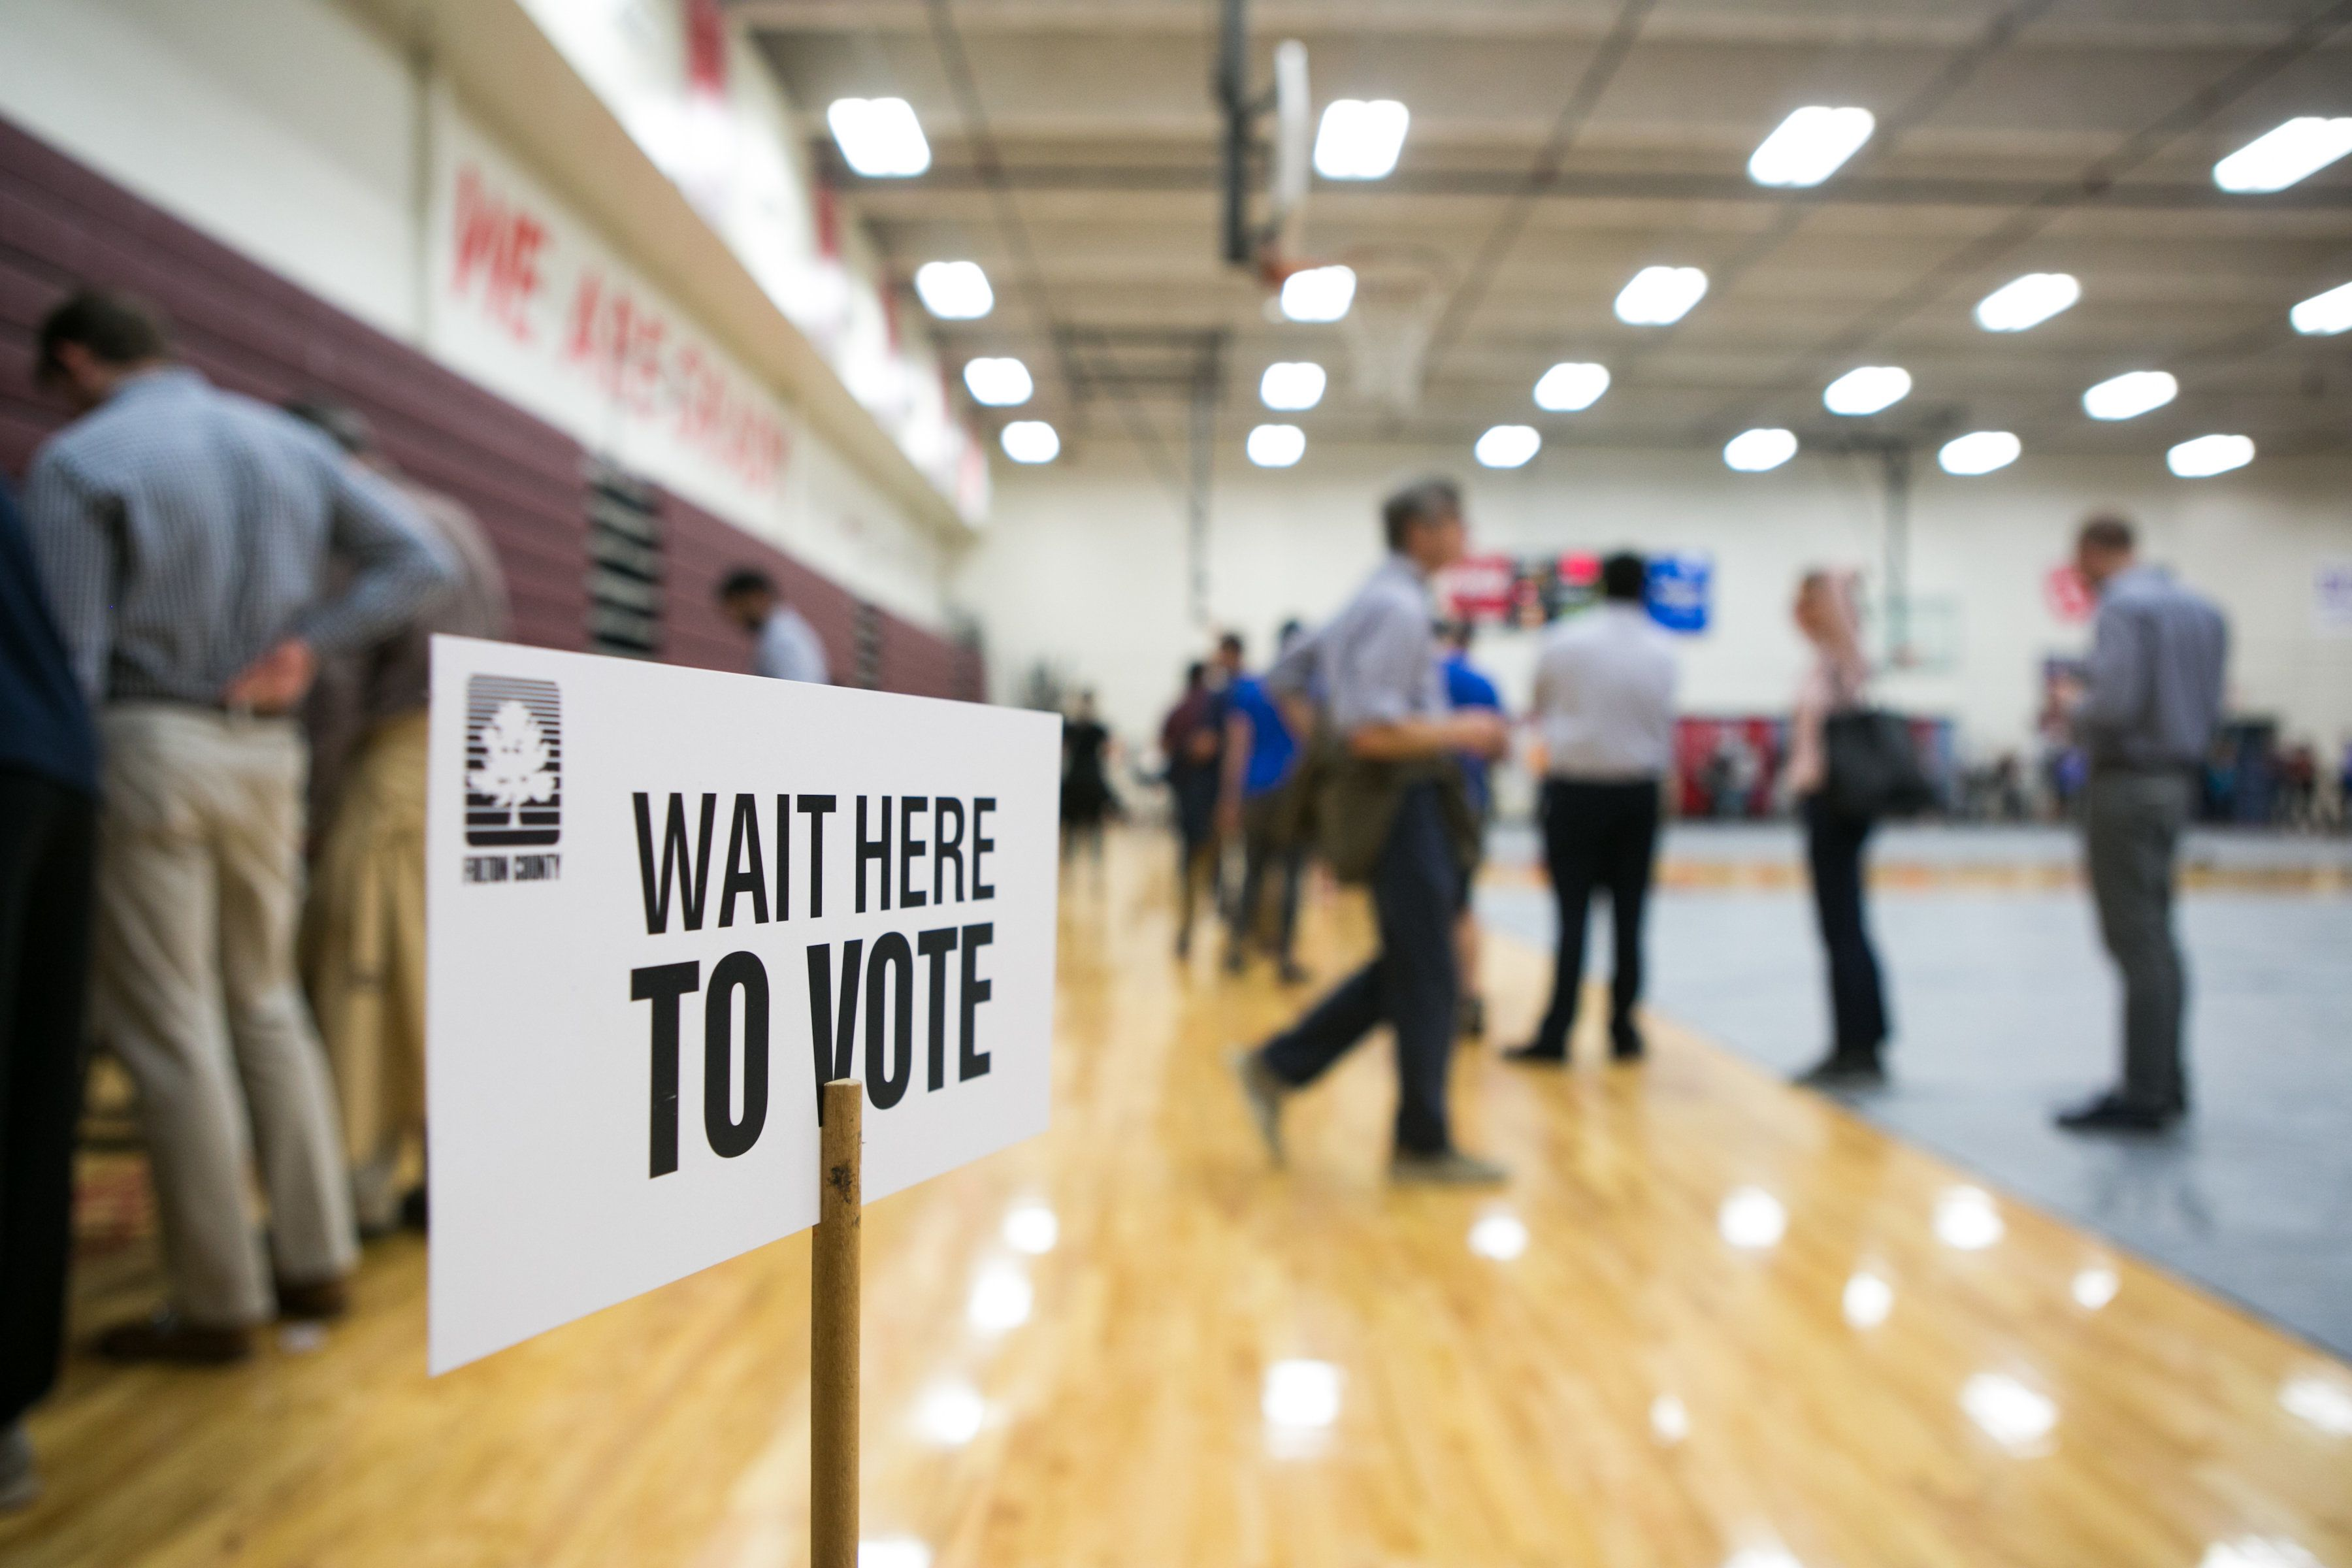 ATLANTA, GA - NOVEMBER 06: Voters line up to cast their ballots at a polling station set up at Grady High School for the mid-term elections on November 6, 2018 in Atlanta, Georgia.  Georgia has a tight race to elect the state's next Governor.  (Photo by Jessica McGowan/Getty Images)